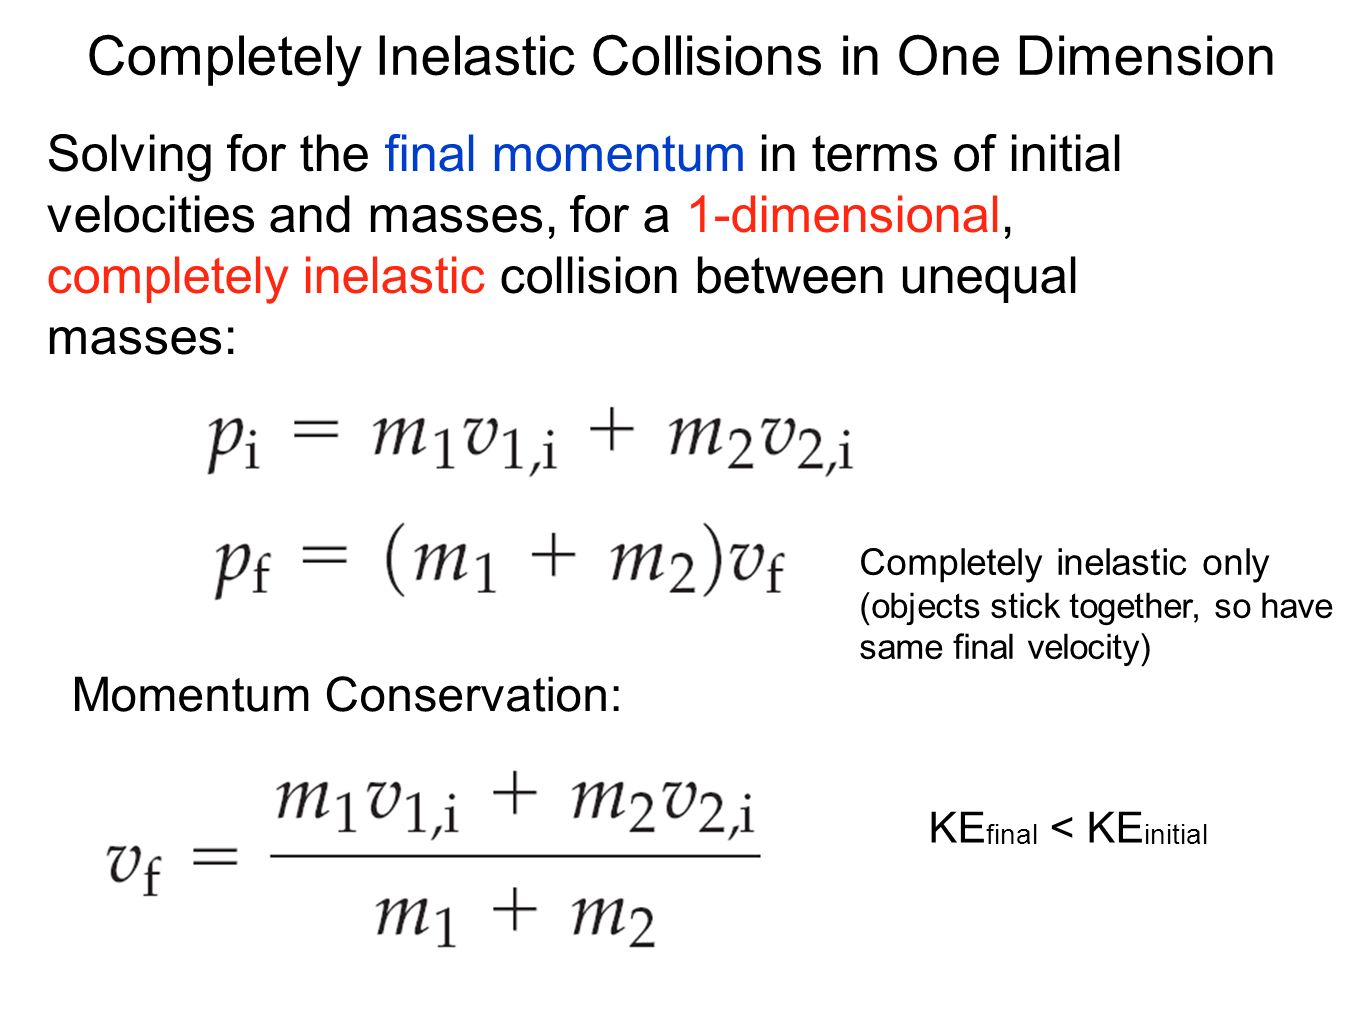 inelastic collision Paul andersen compares and contrasts elastic and inelastic collisions in all collisions the linear momentum will be conserved in an elastic collision the kinetic energy of the objects will also be maintained several examples and demonstrations are included.